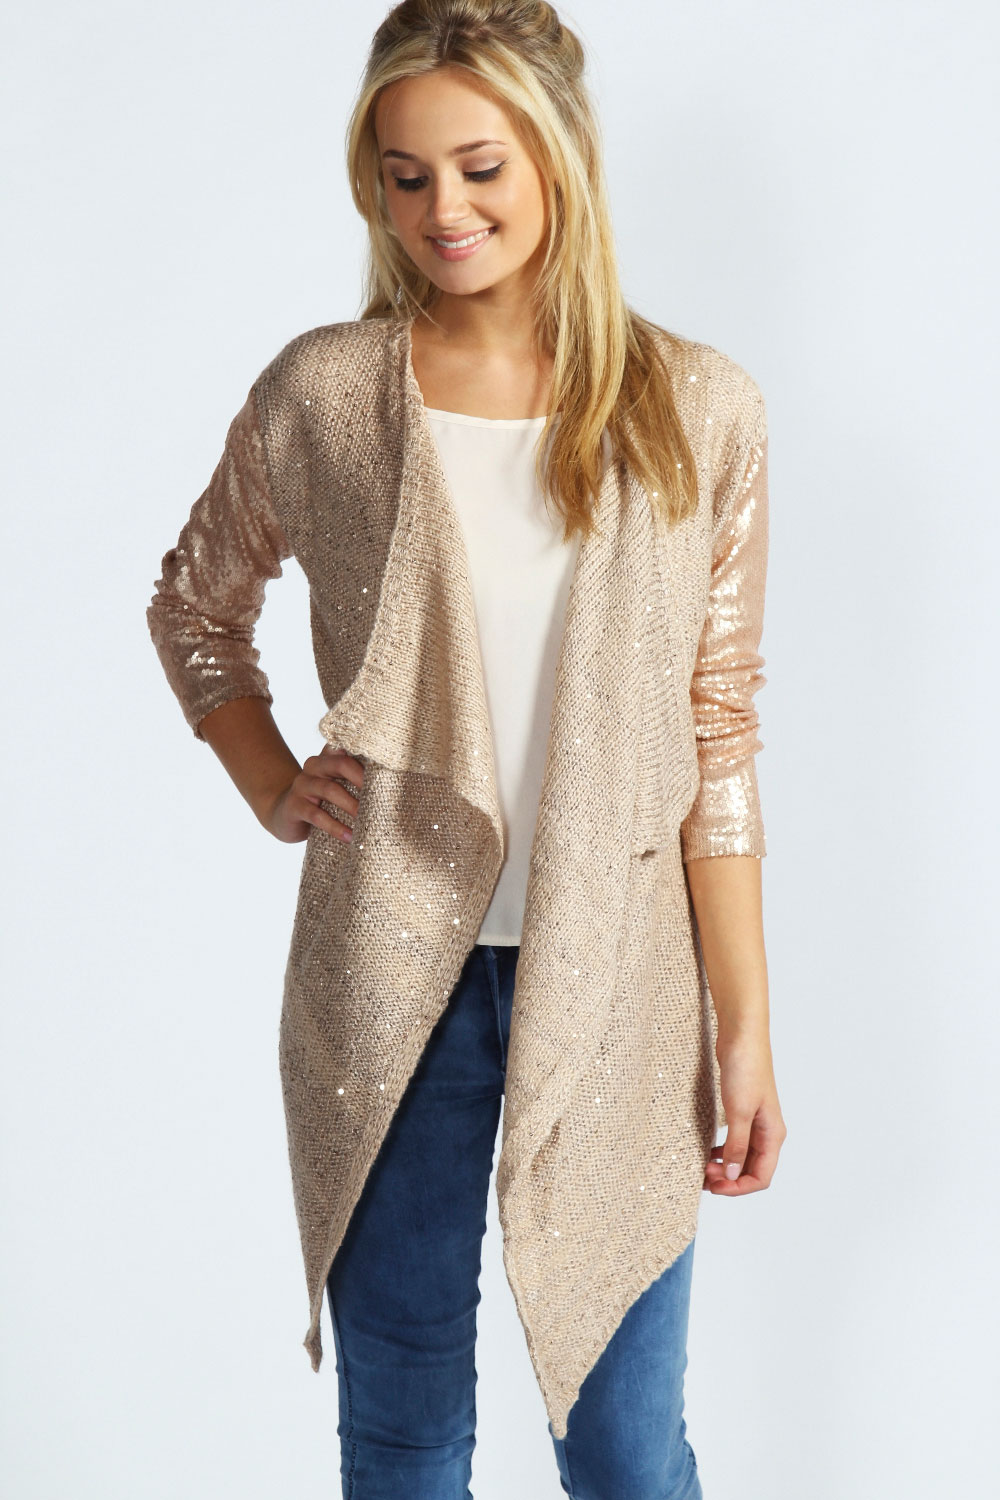 Boohoo Harper Sequin Sleeve Knit Cardigan In Beige | eBay